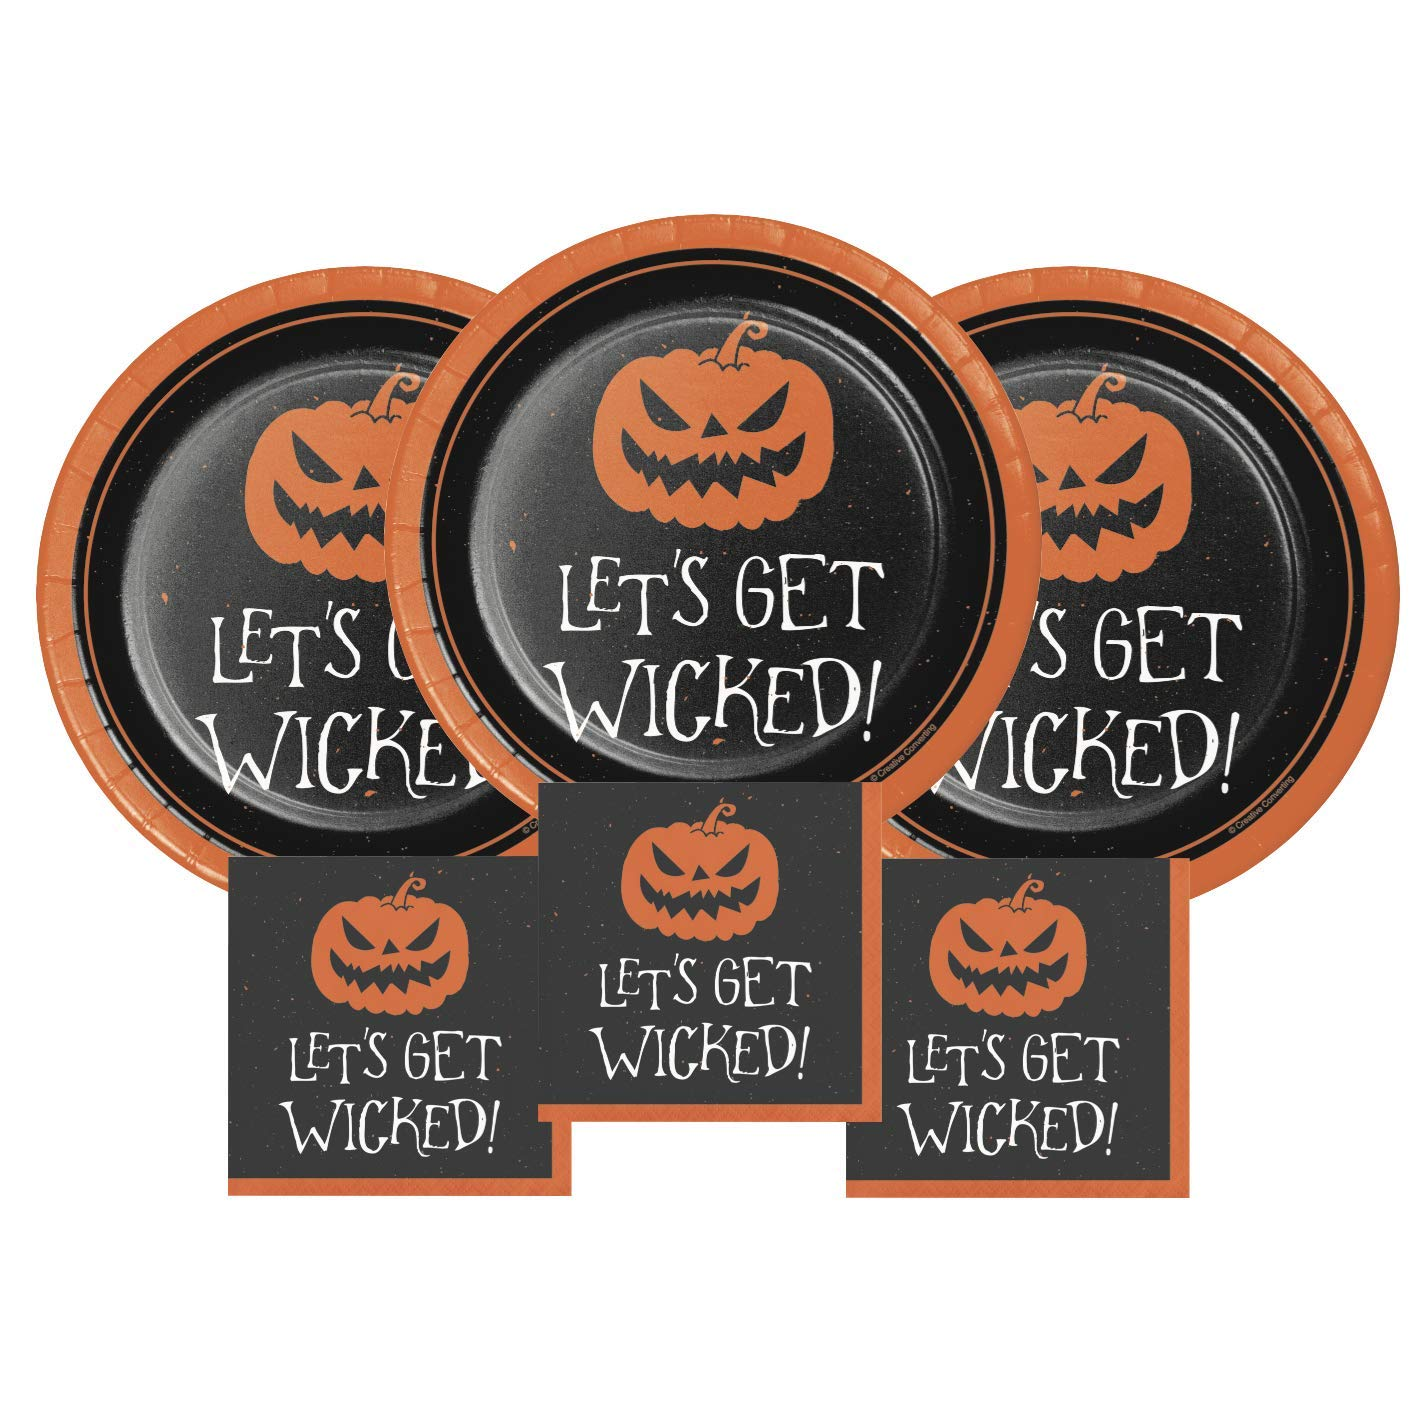 Halloween Plates and Paper Cocktail Napkins Party Supplies Disposable Large Set for 24 People''Let's Get Wicked'' by FAKKOS Design